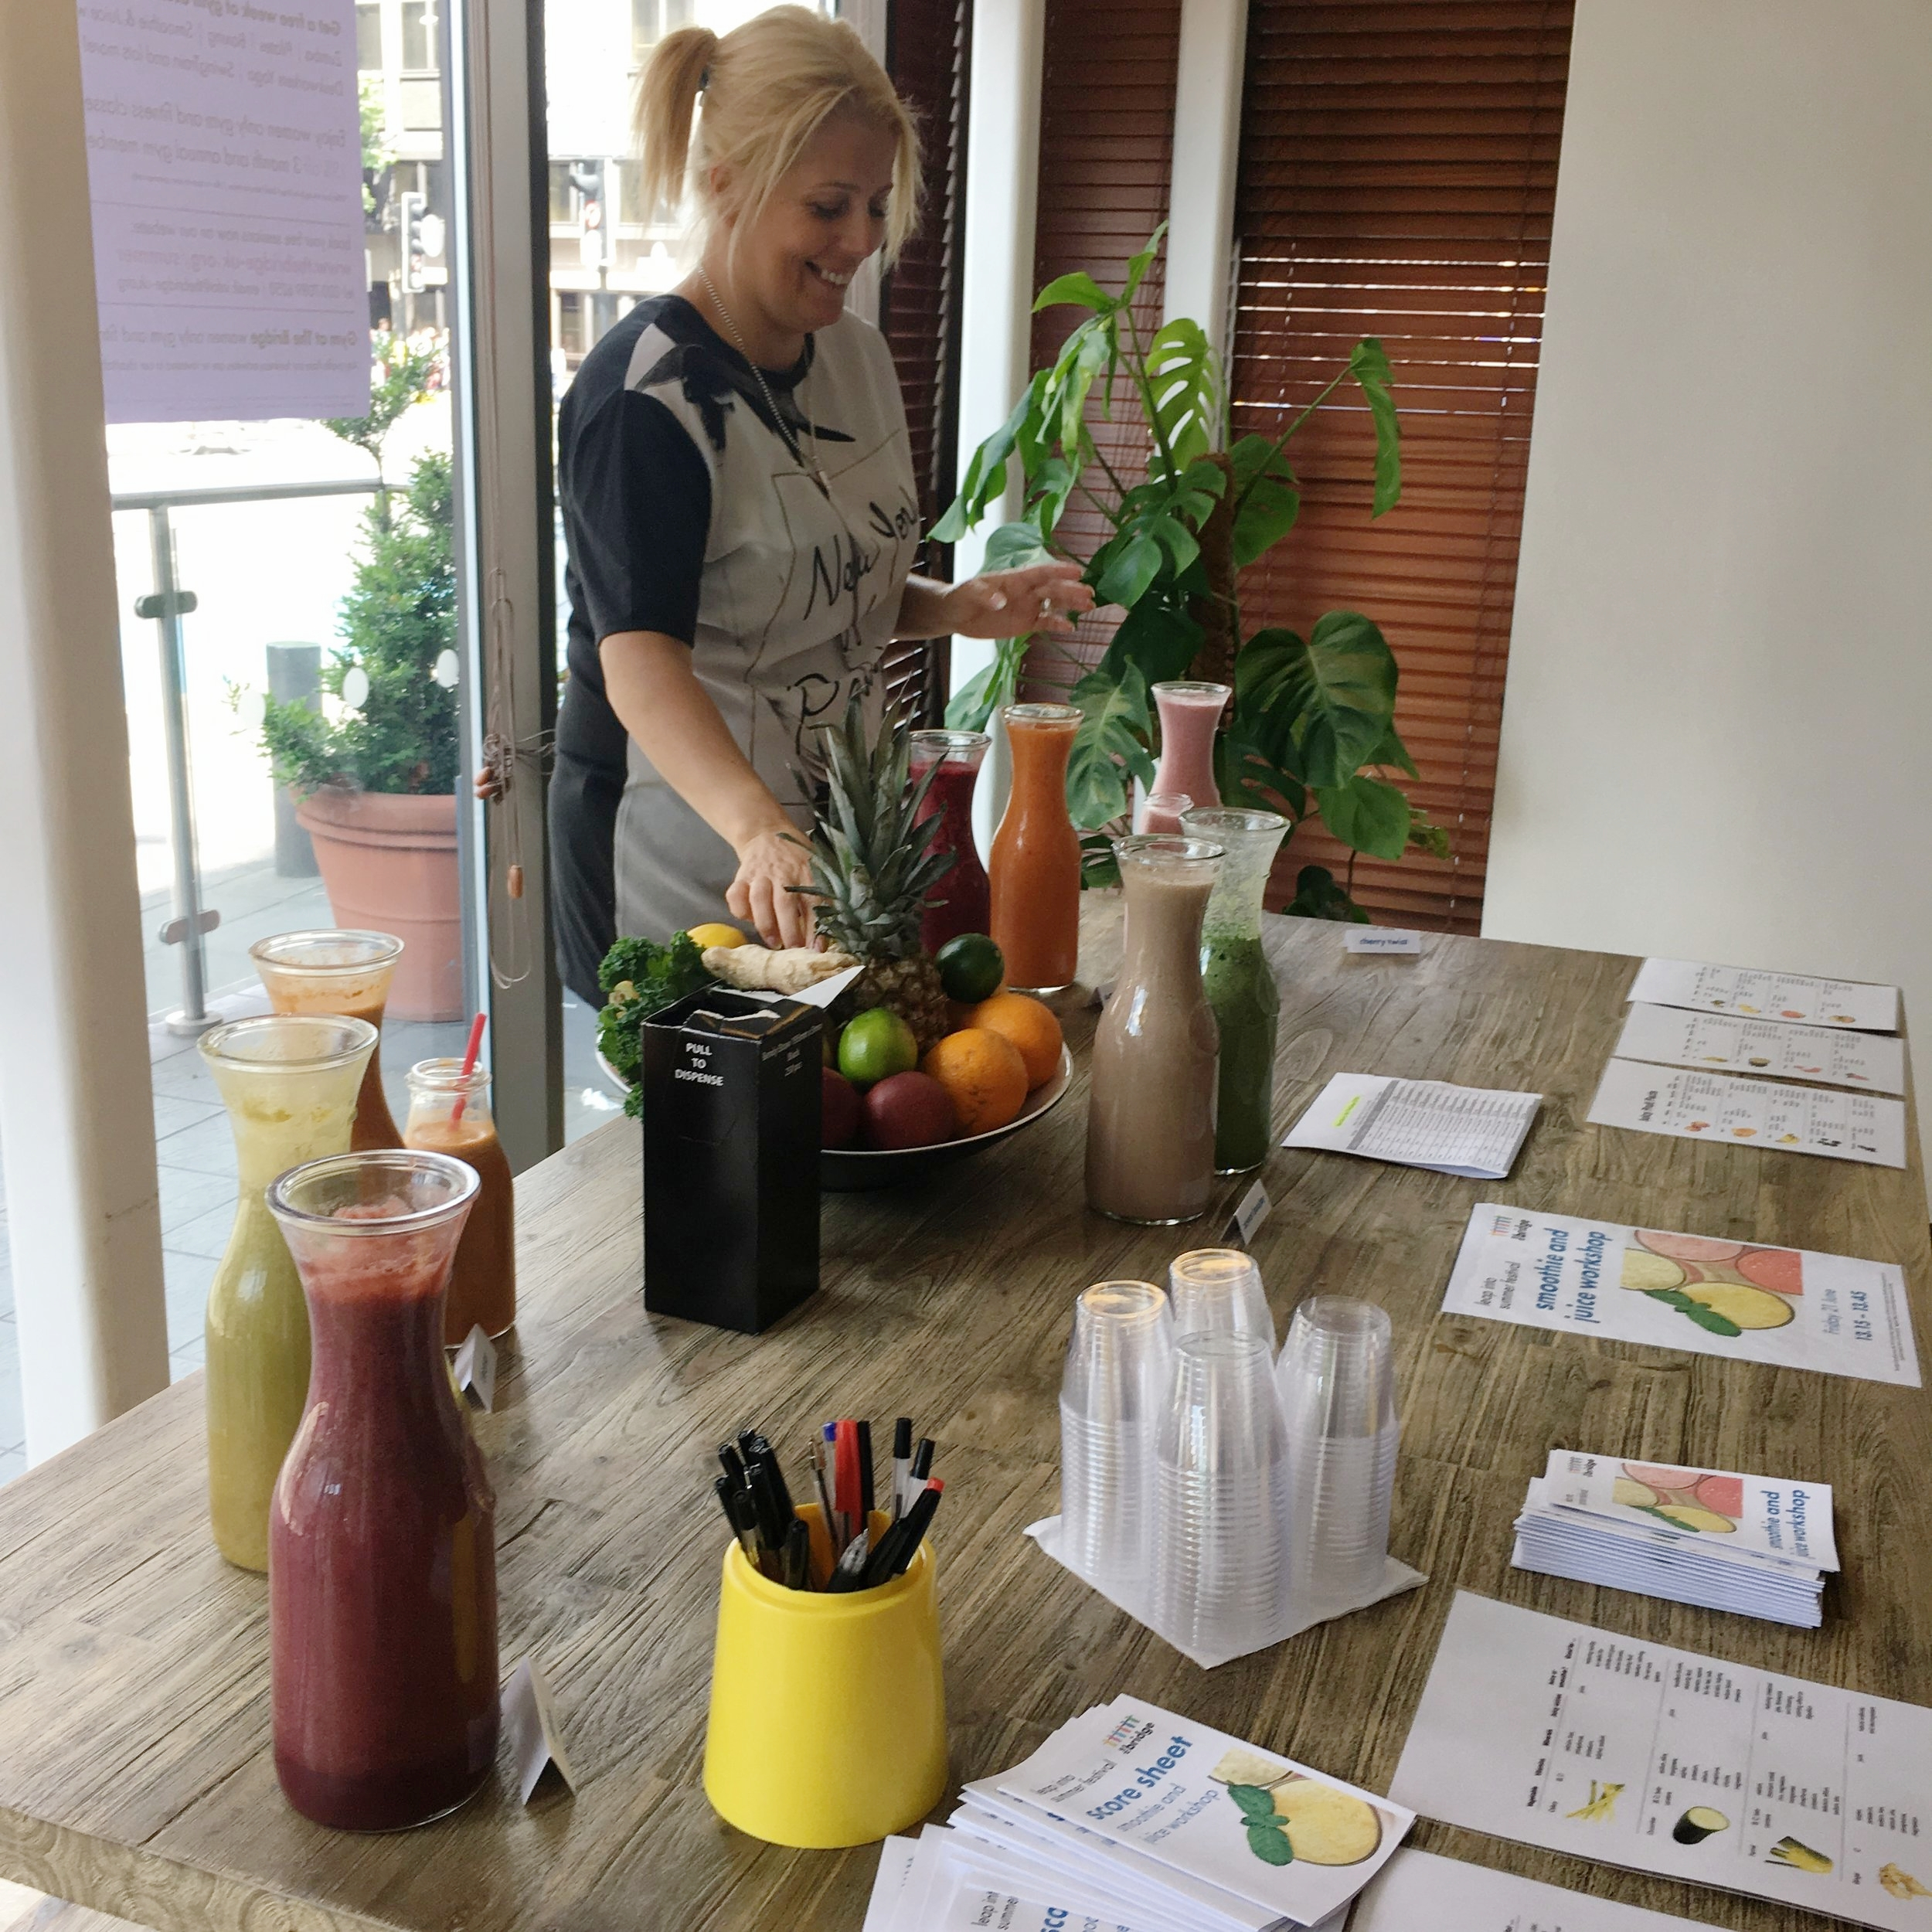 tracey creating the smoothies